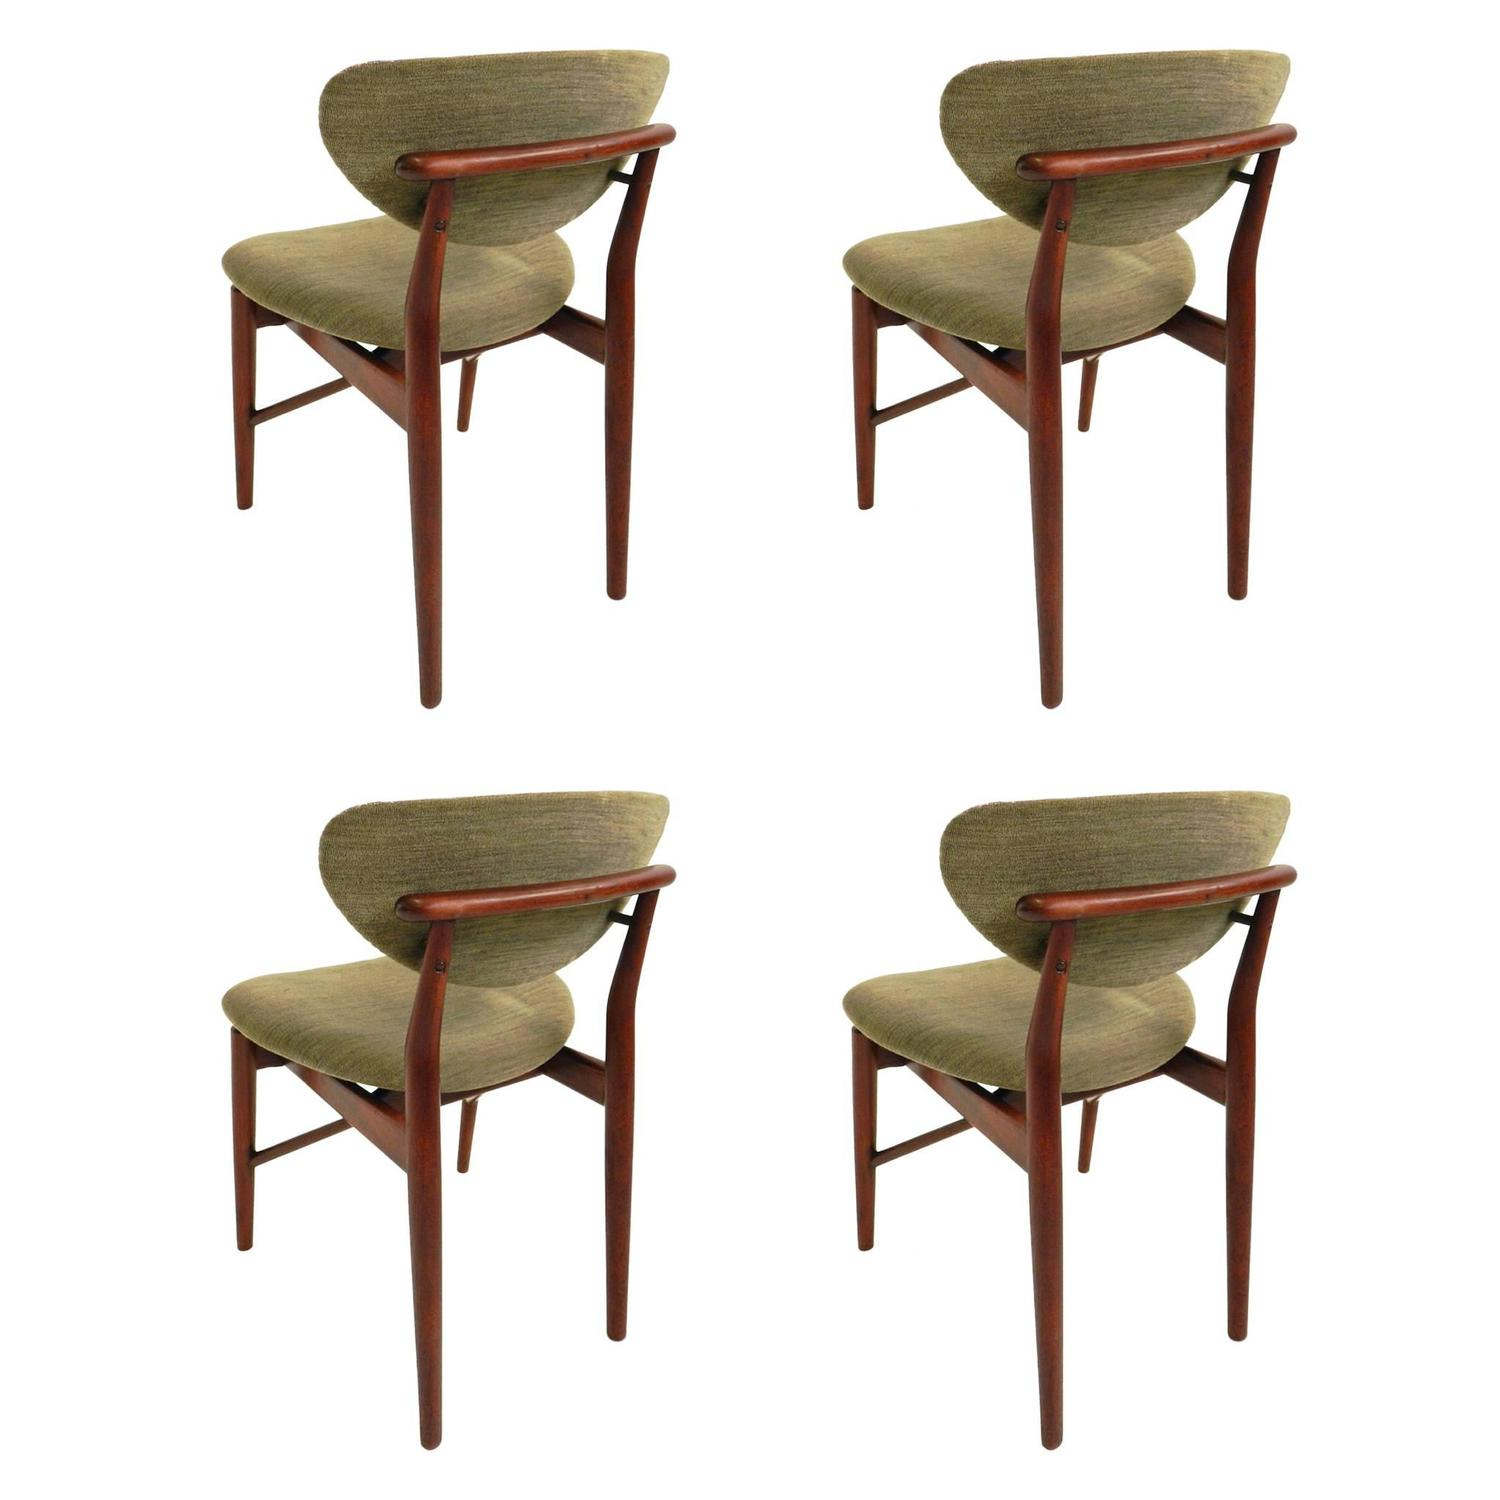 Finn Juhl 108 Dining Chairs For Sale at 1stdibs